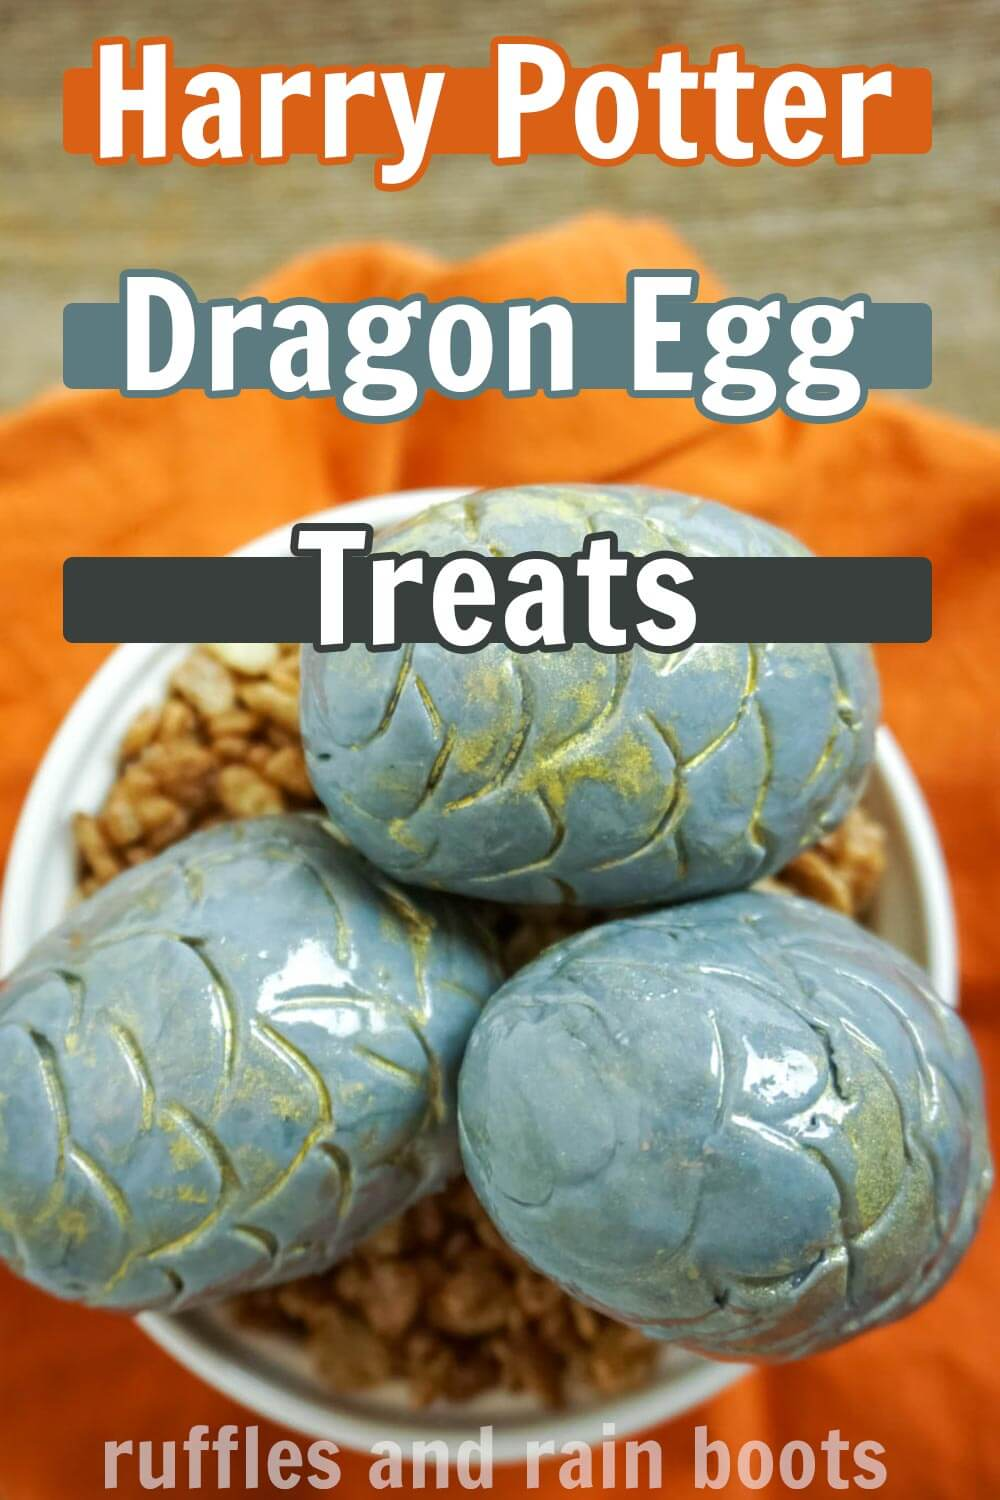 Harry Potter Dessert in a white bowl on an orange background with text which reads harry potter Dragon Egg Treats